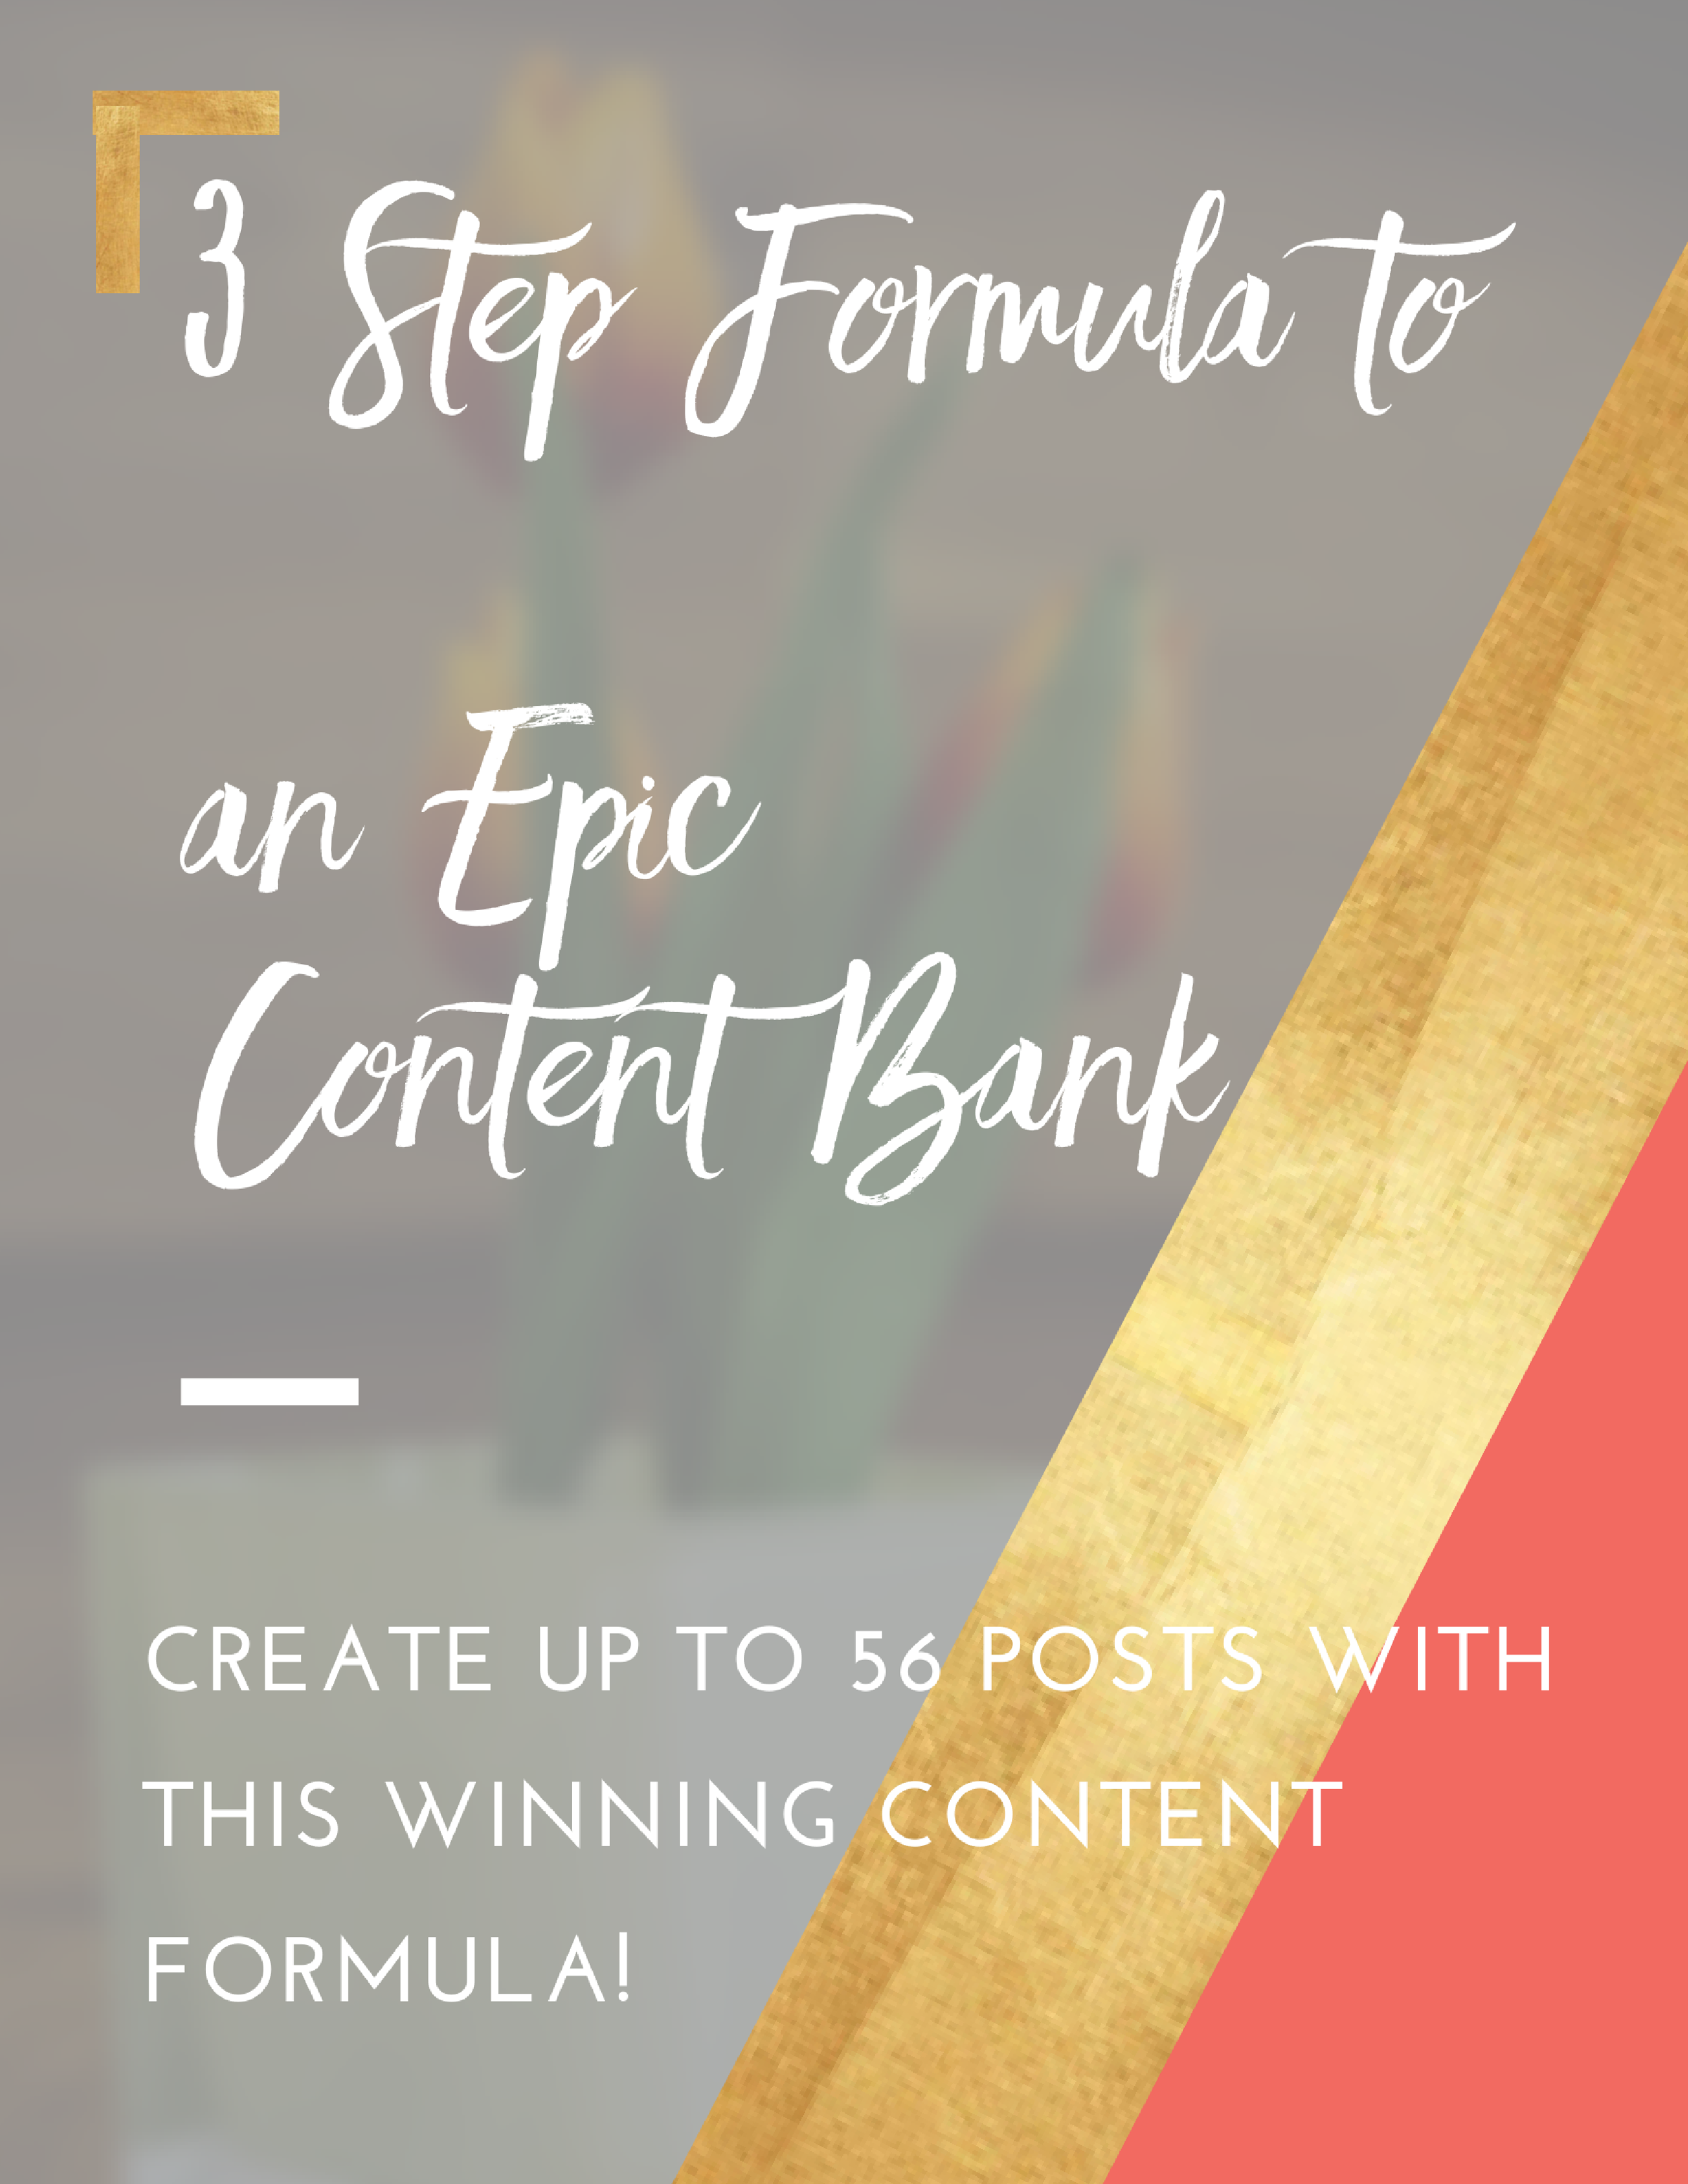 3 Steps to Formula to an Epic Content Bank